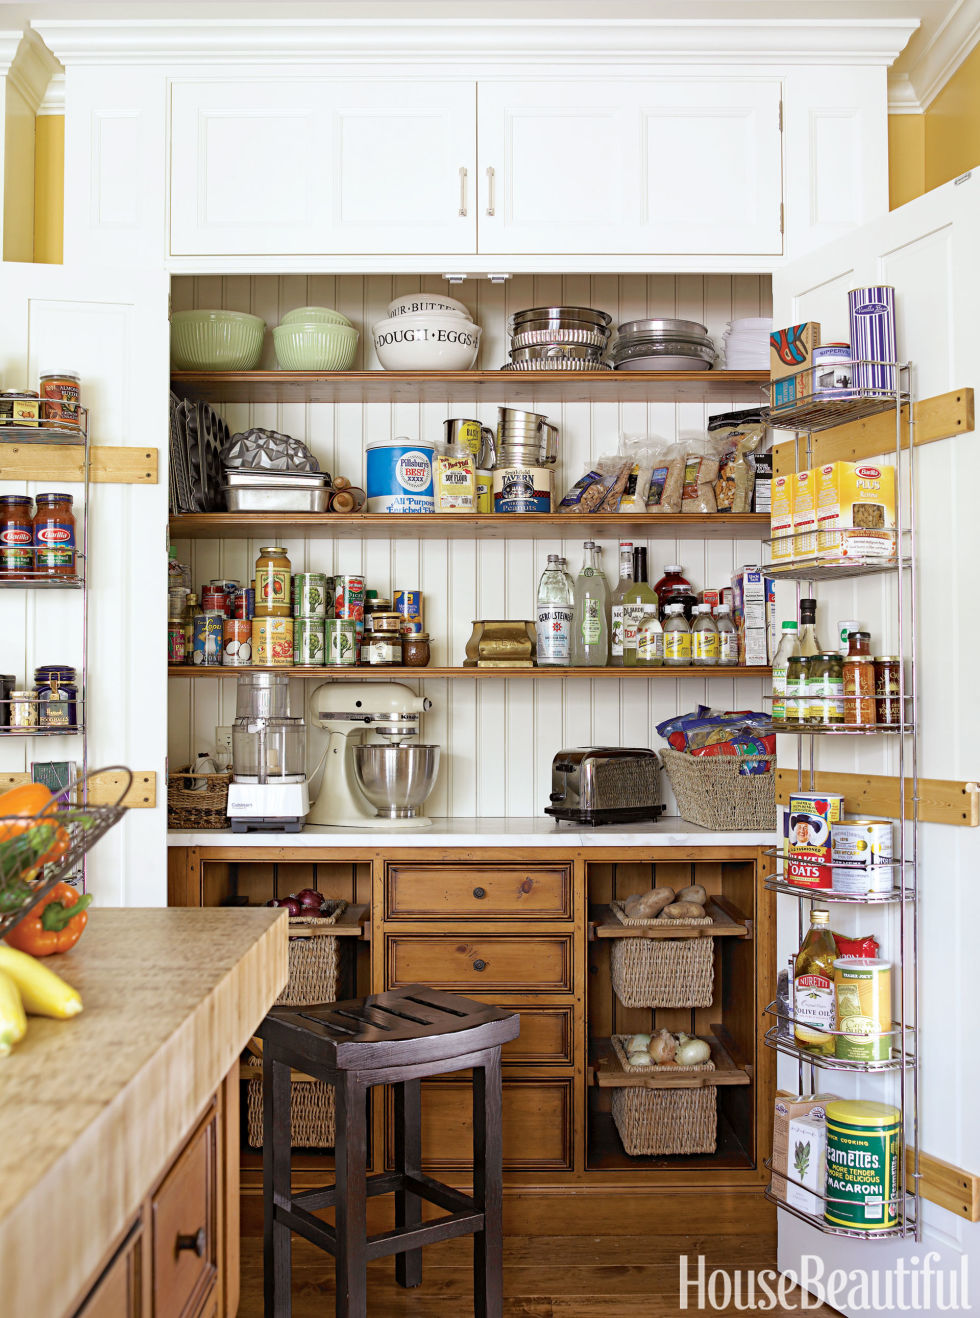 20 unique kitchen storage ideas easy storage solutions for kitchens - Kitchen Storage Idea